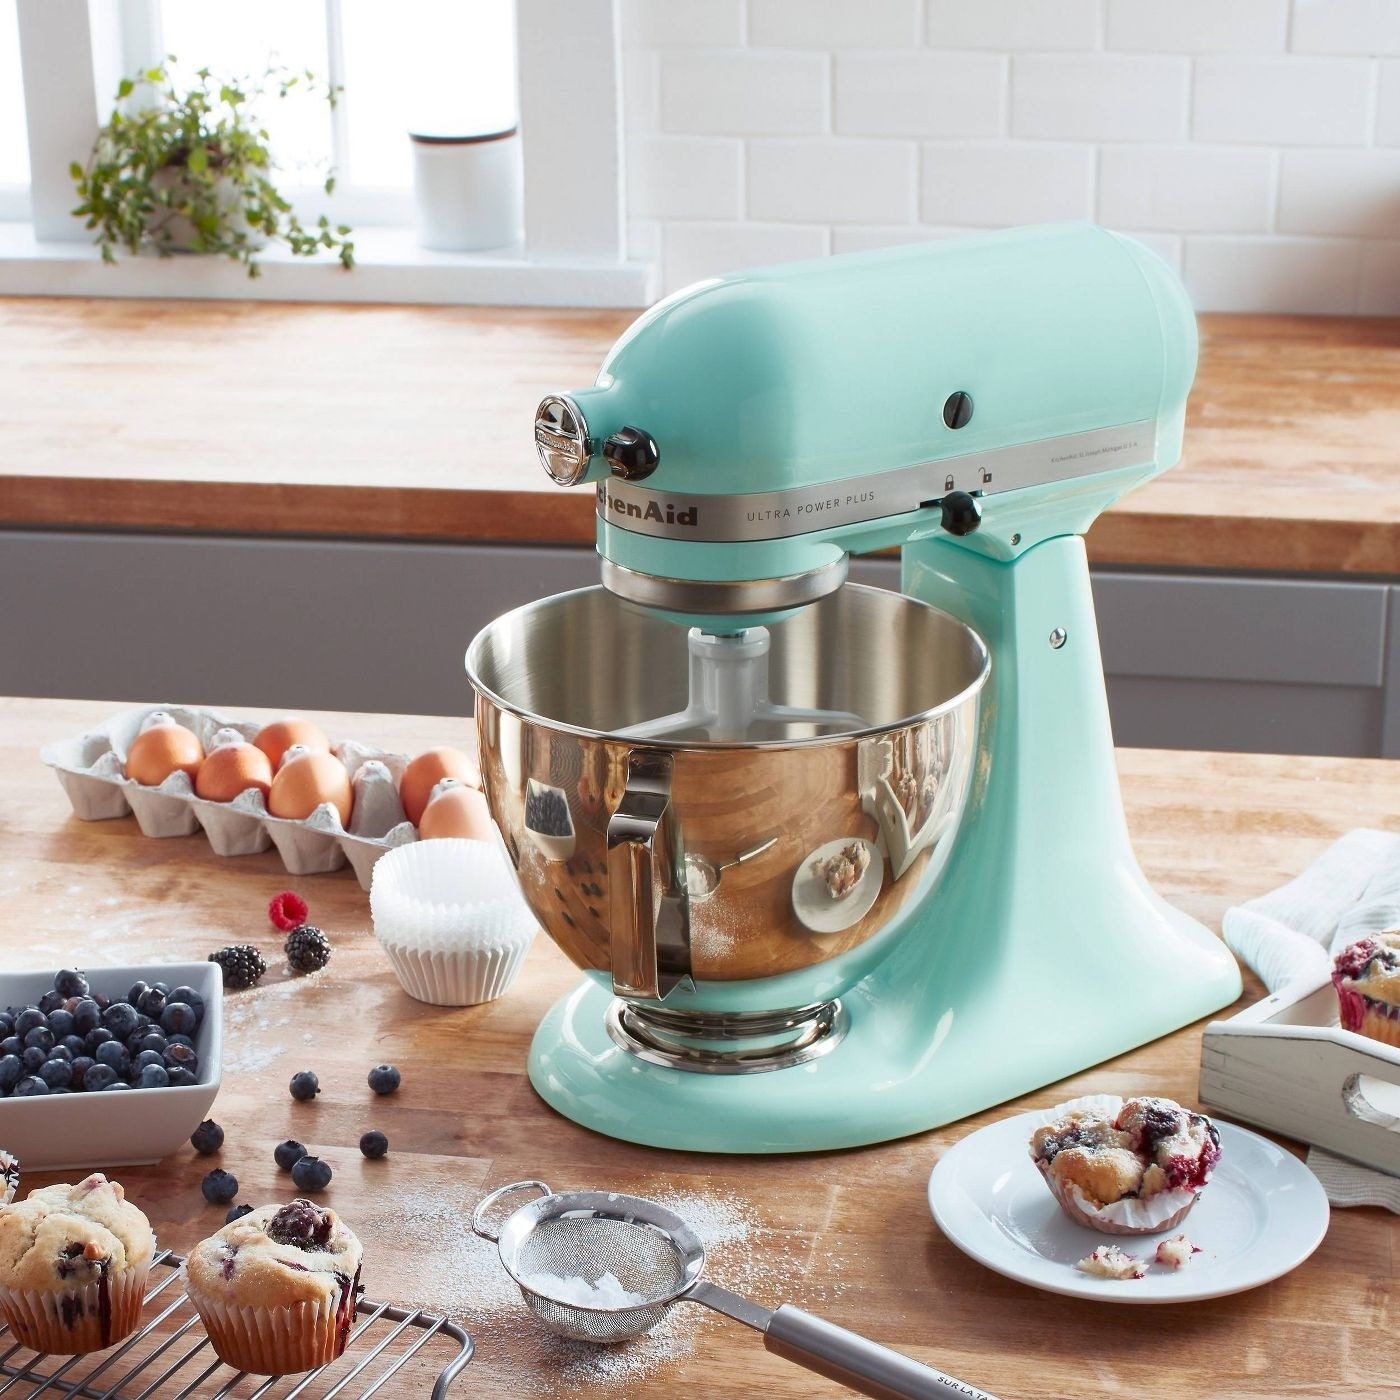 A red mixer on a counter with baked goods and ingredients